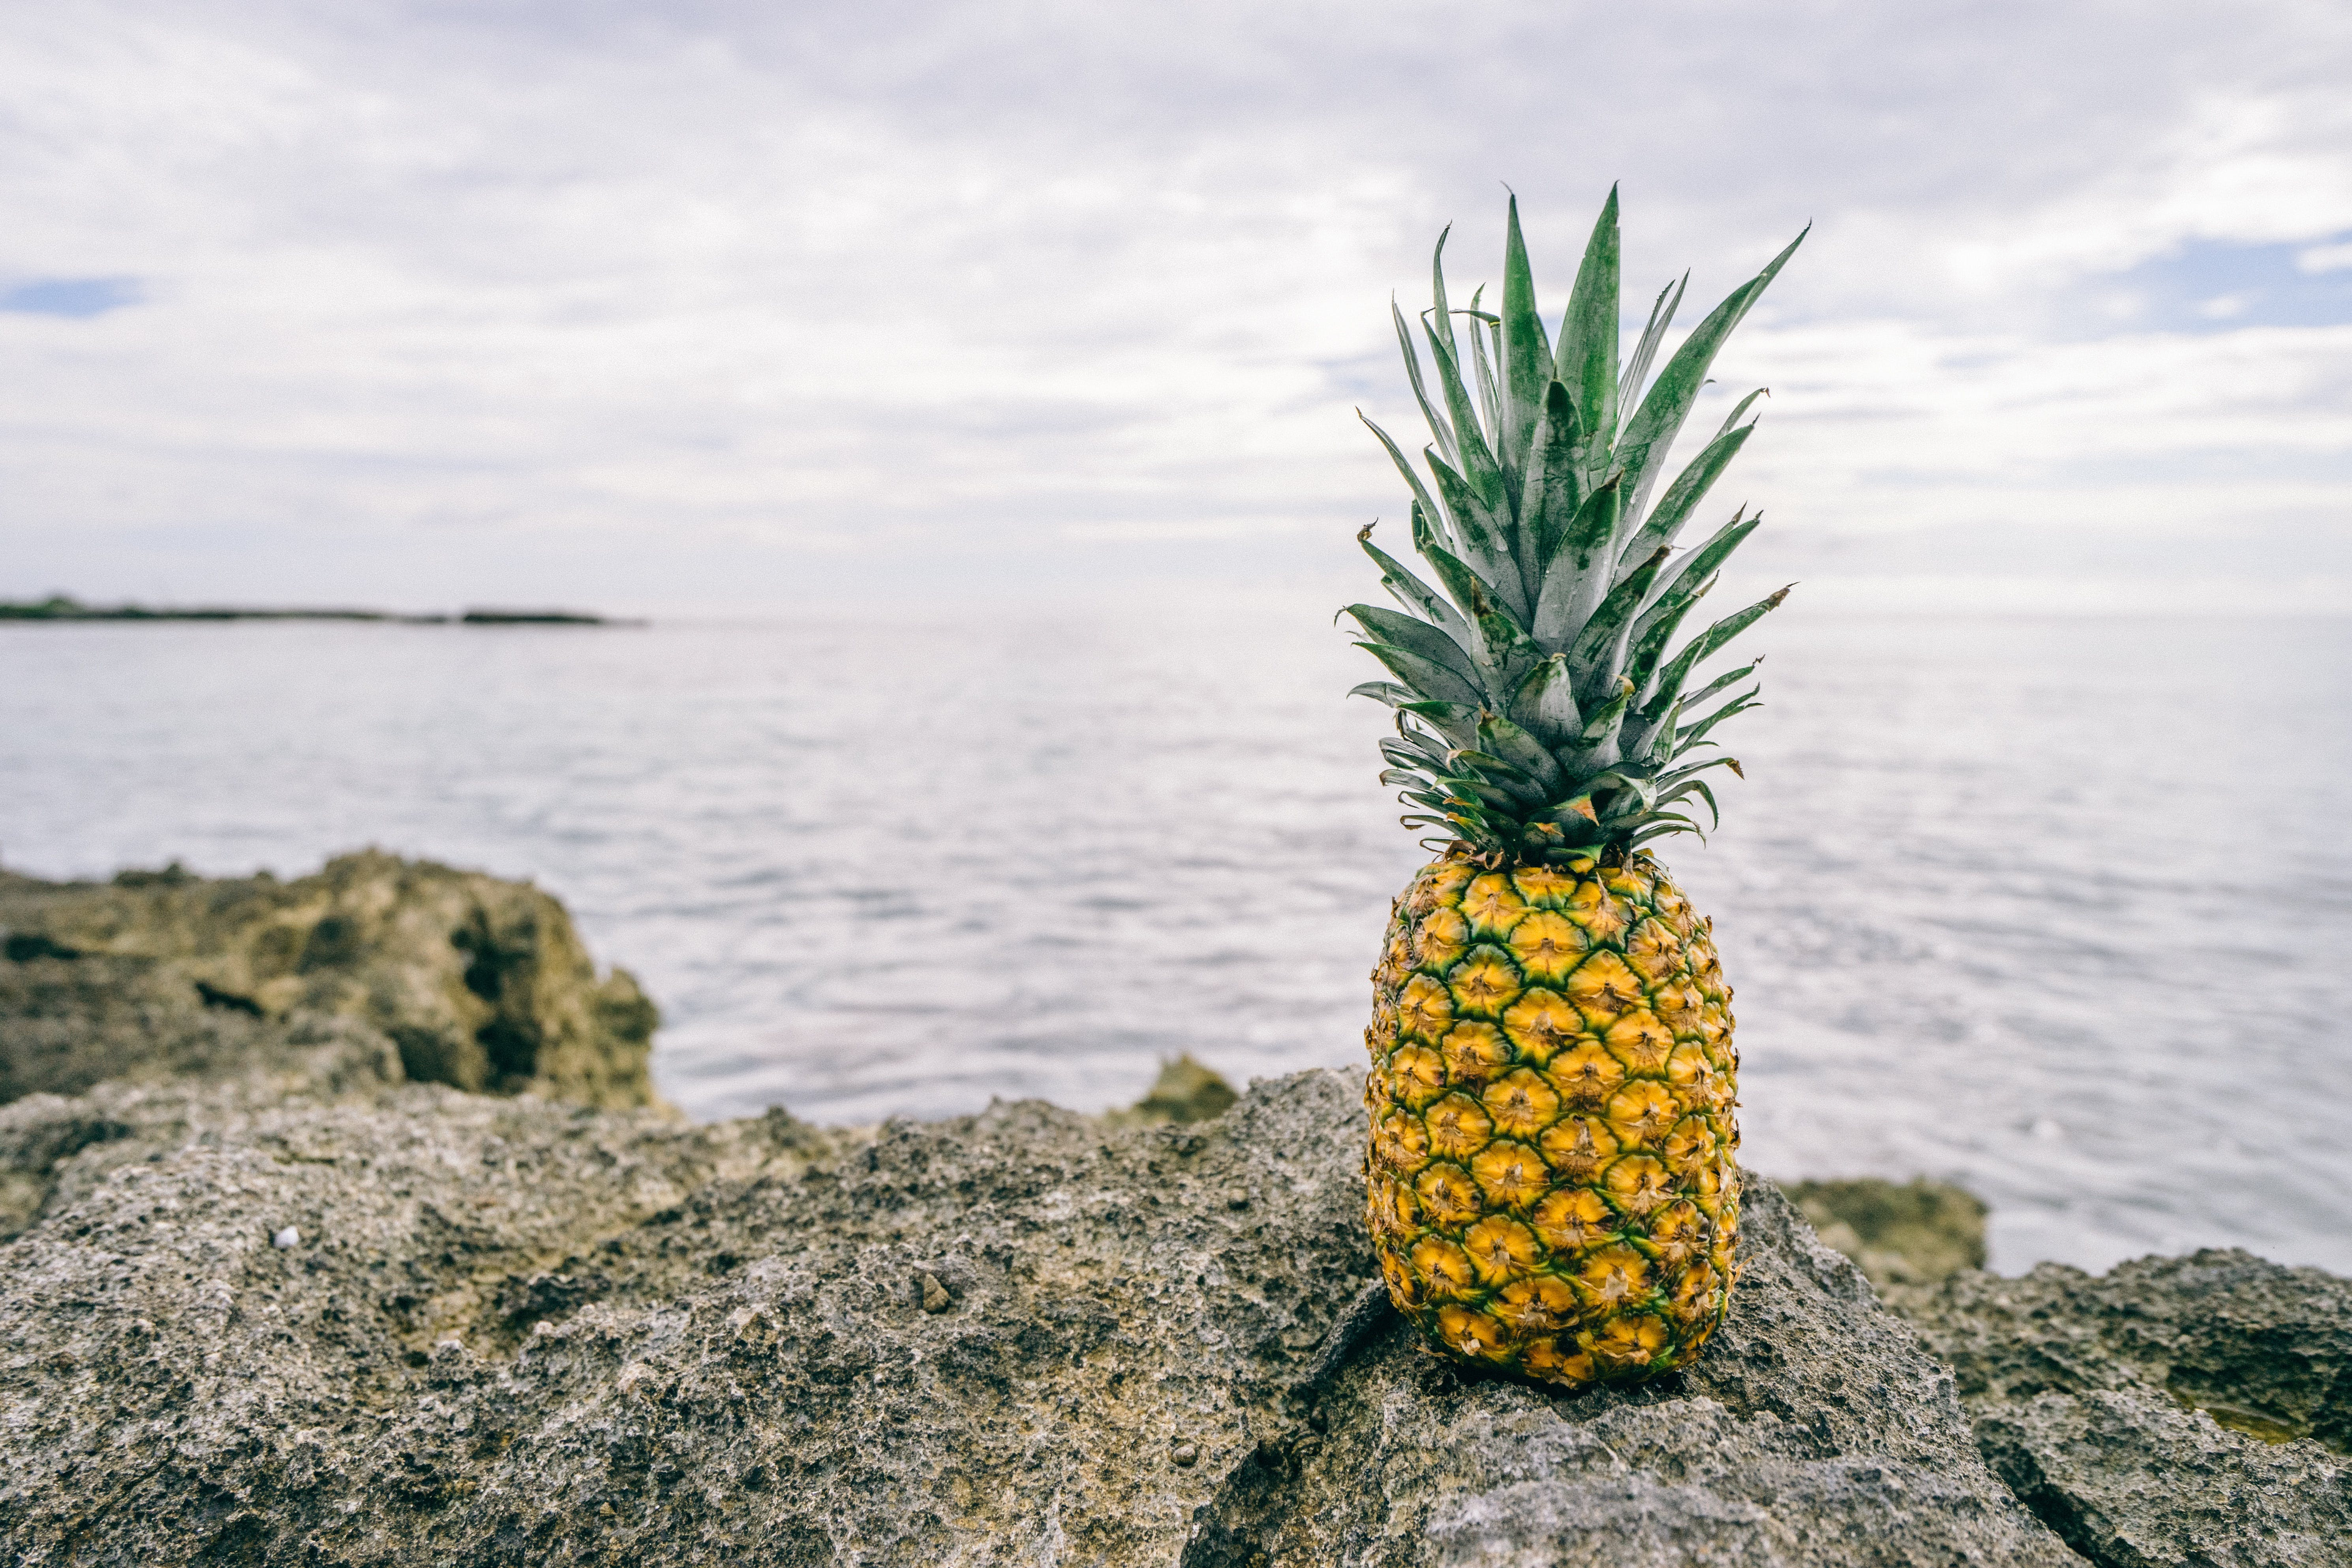 Ripe Pineapple on Gray Rock Beside Body of Water